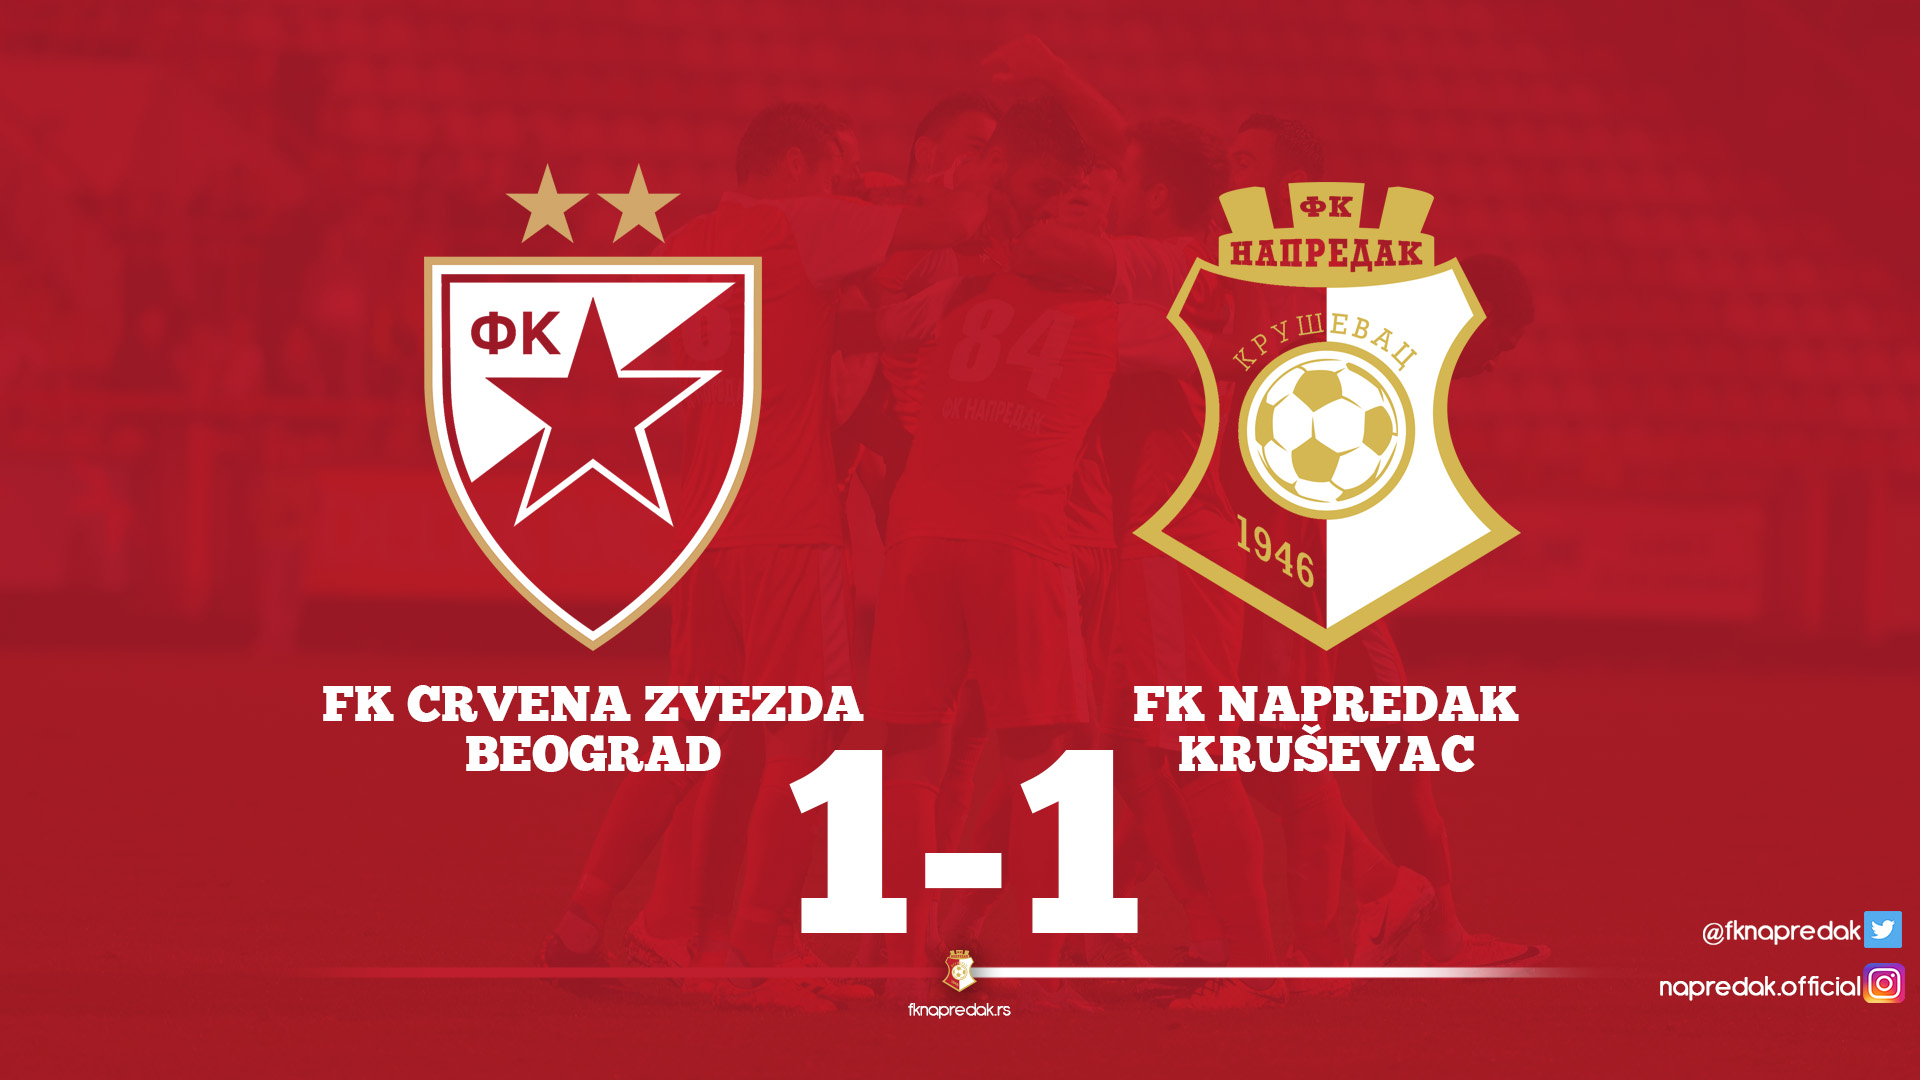 Red star F.C - Napredak F.C 1:1